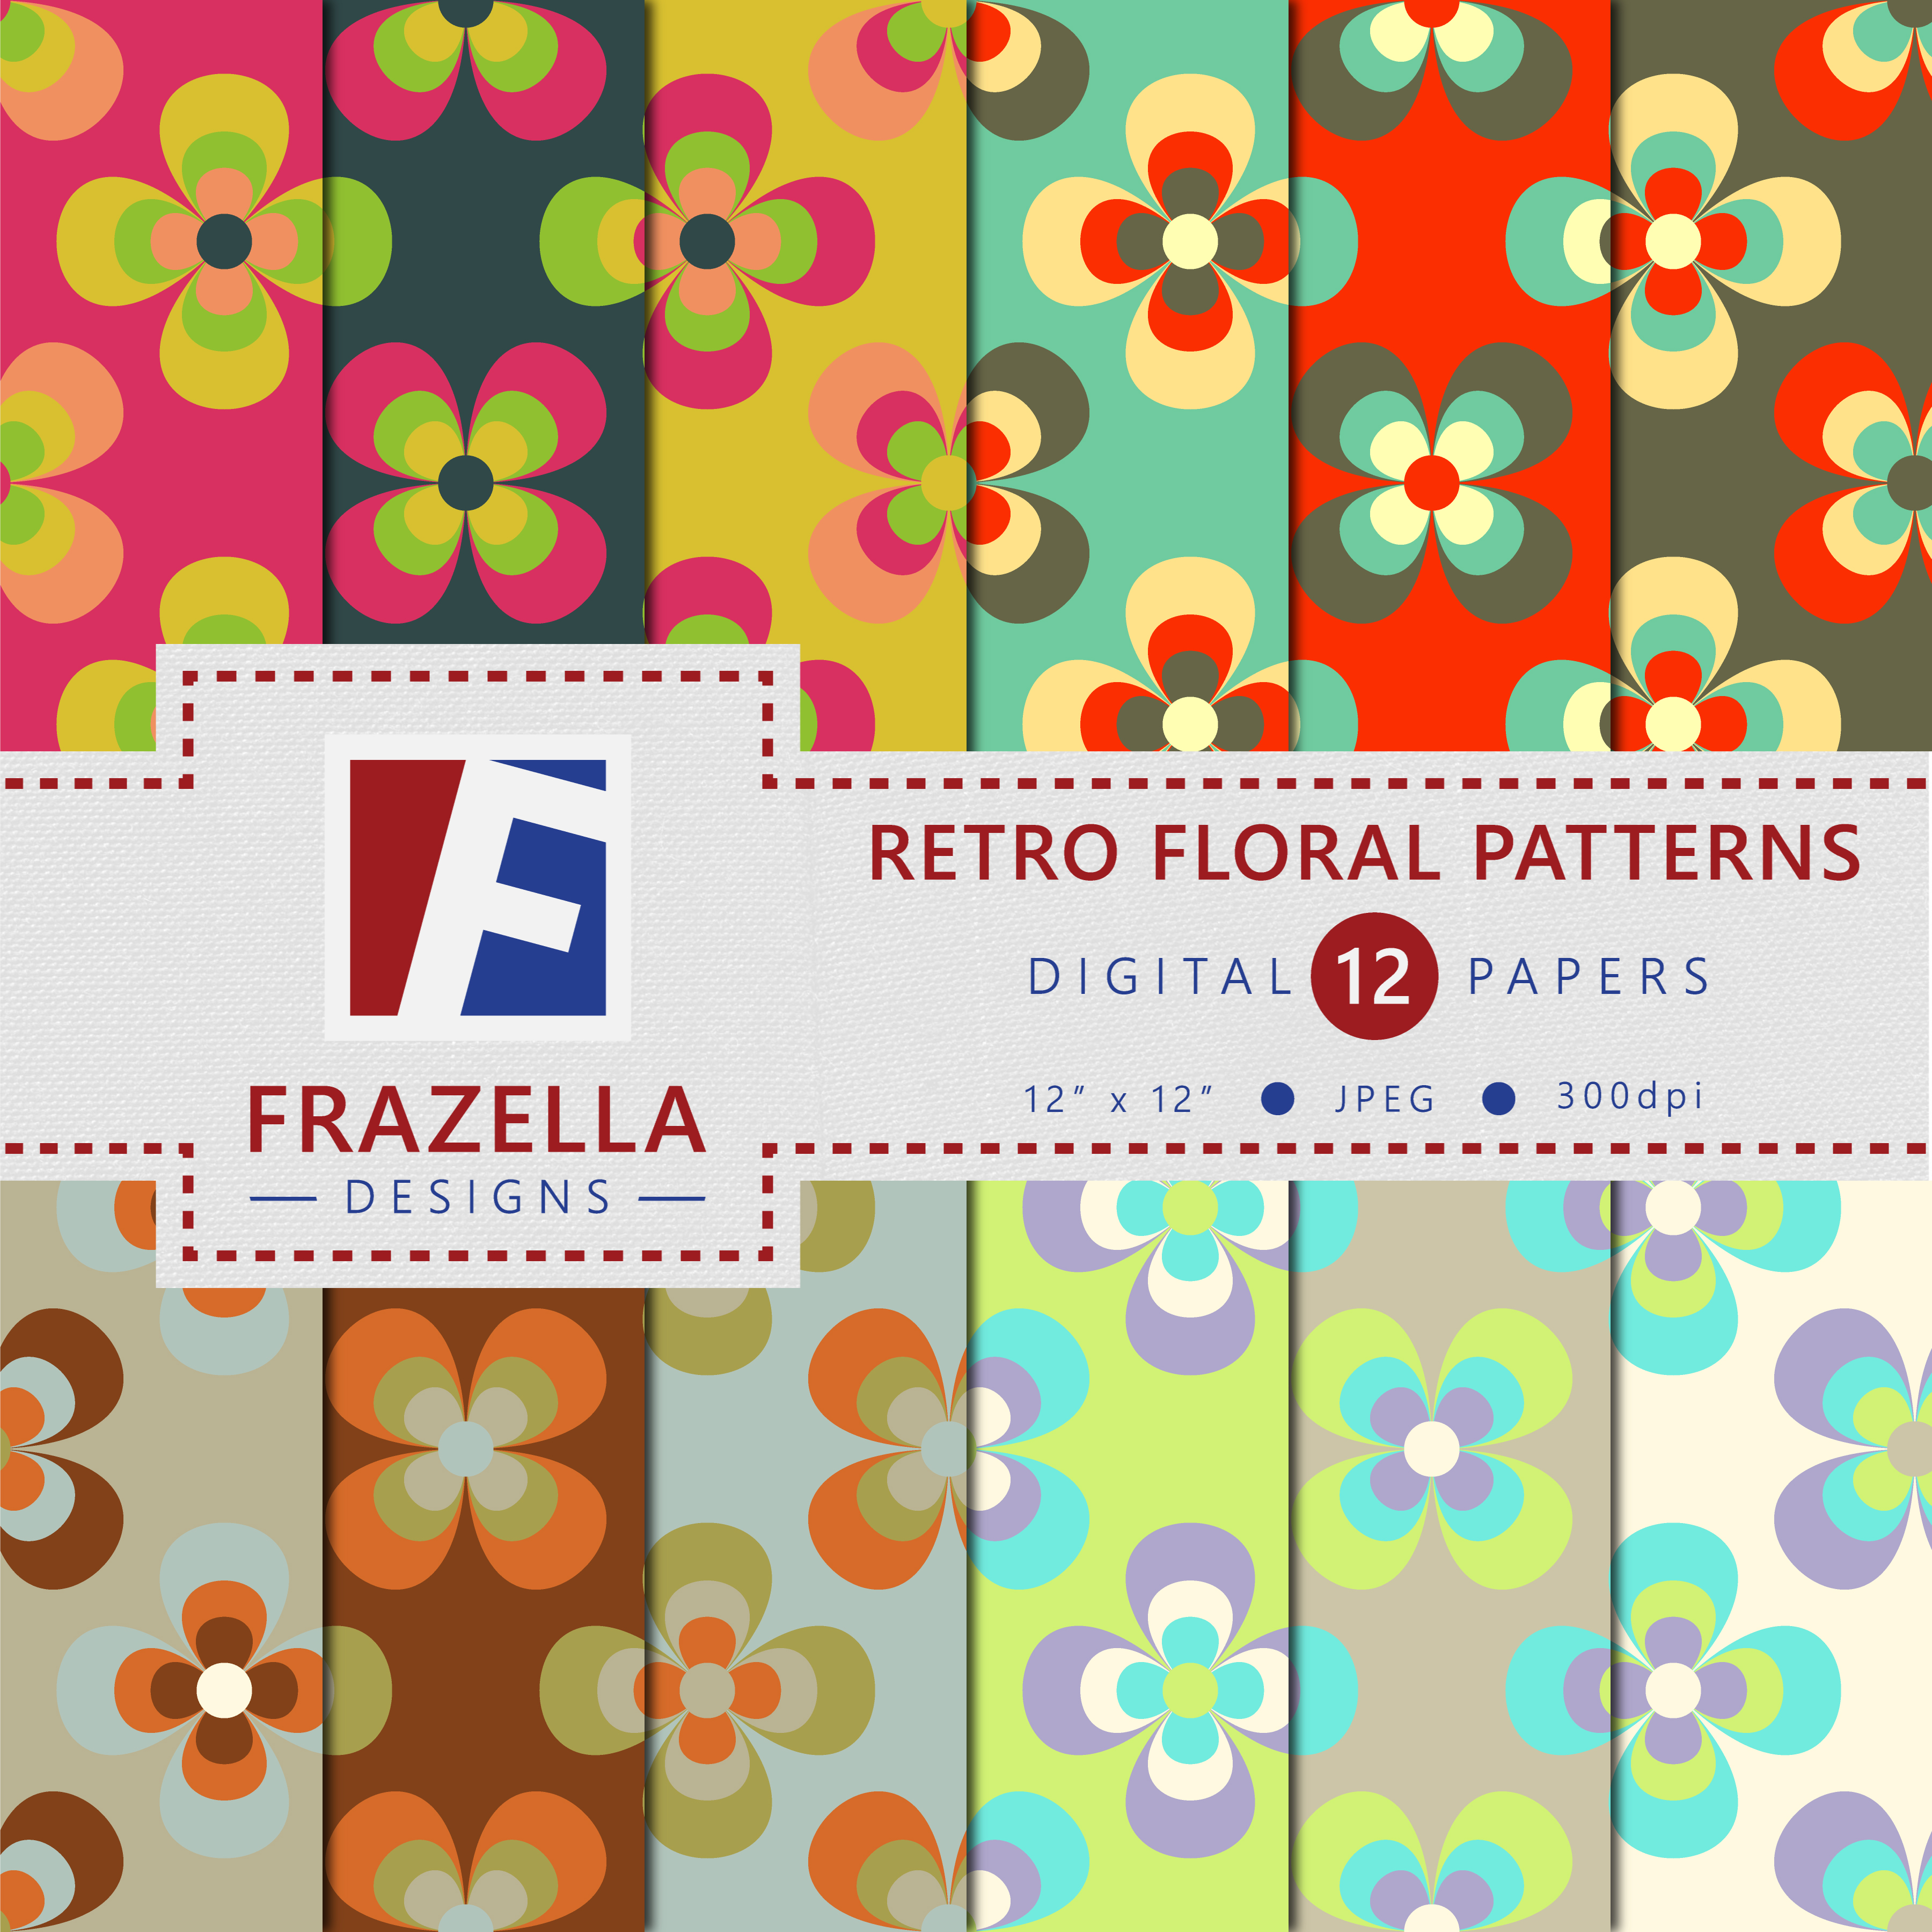 Download Free Retro Floral Design Digital Paper Graphic By Frazella Designs for Cricut Explore, Silhouette and other cutting machines.